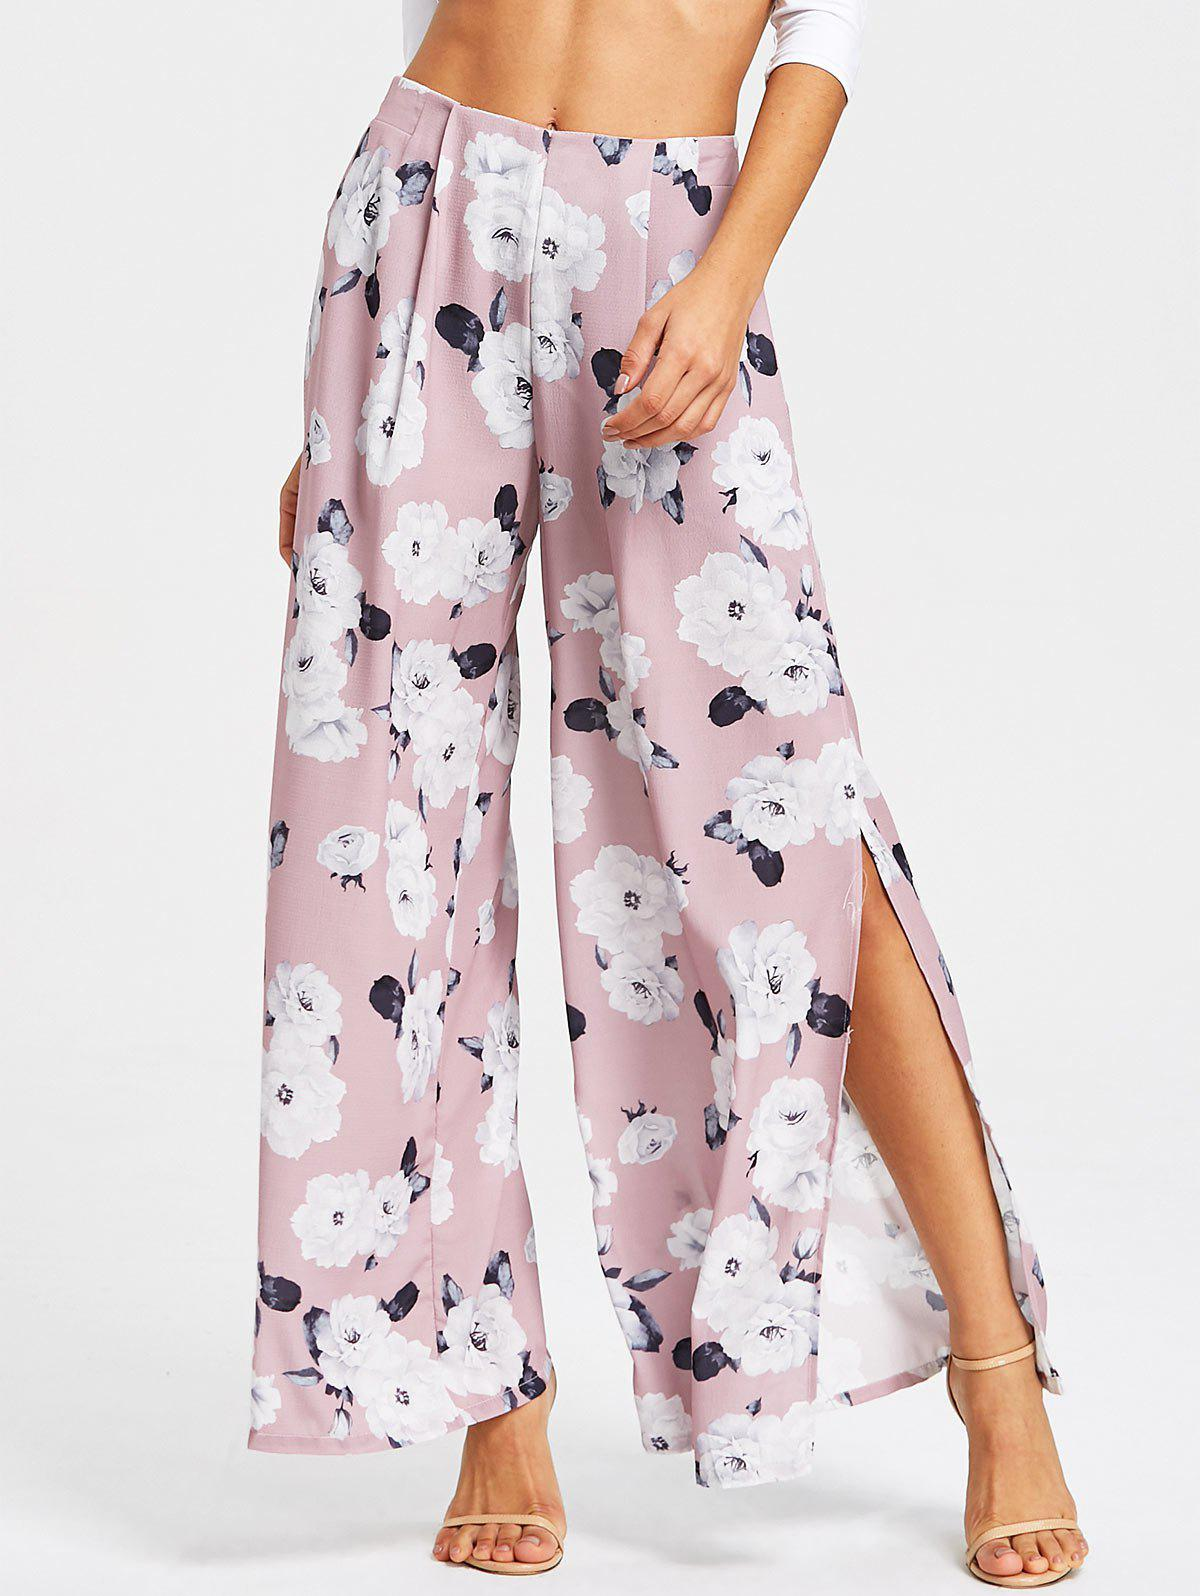 High Slit Floral Print Wide Leg Pants - PALE PINKISH GREY S